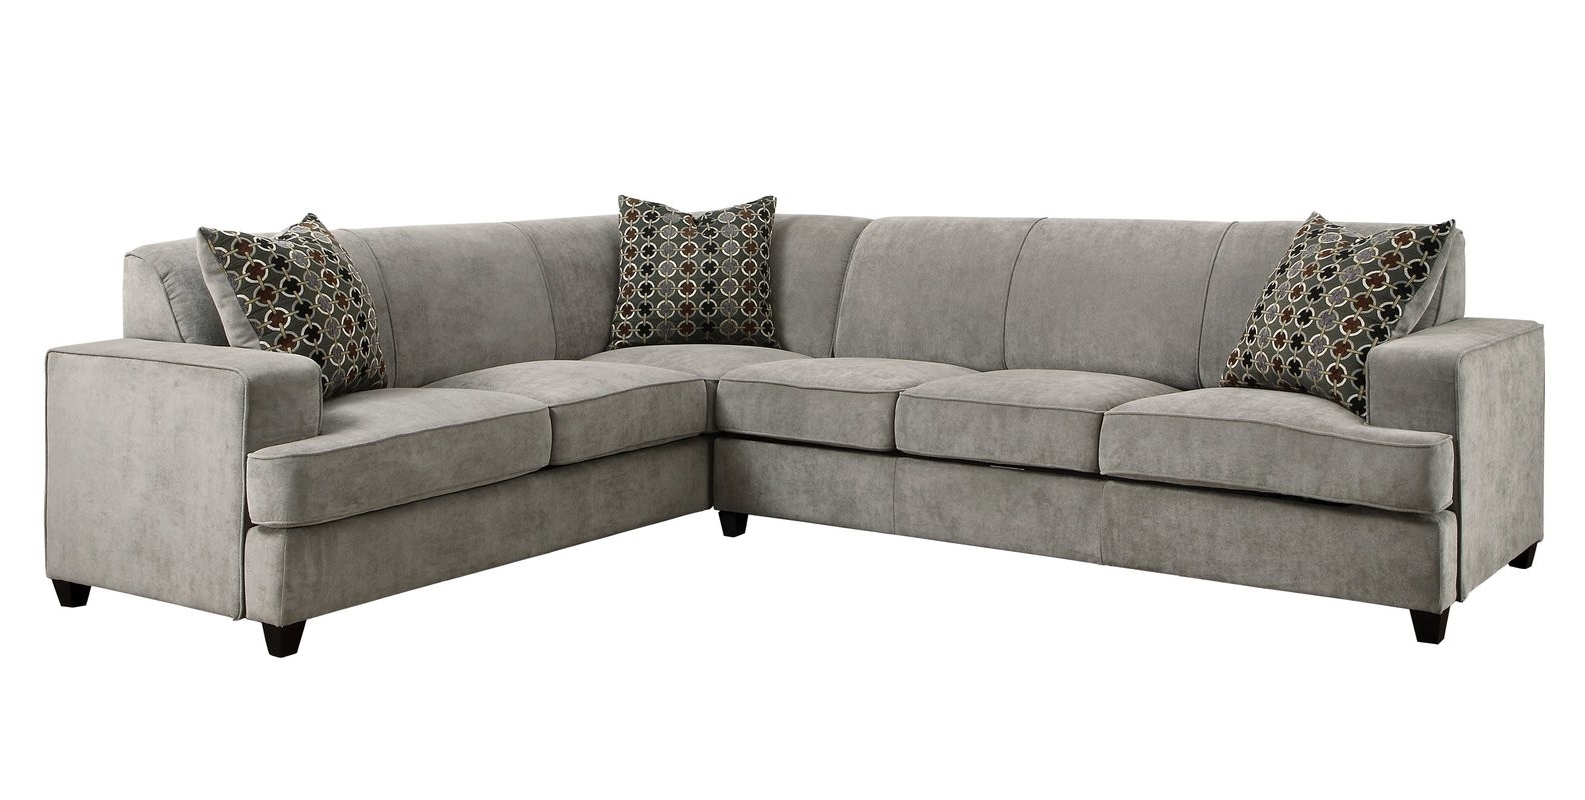 Elegant Simmons Sectional Sofa Joss And Main – Mediasupload Throughout Latest Joss And Main Sectional Sofas (Gallery 20 of 20)